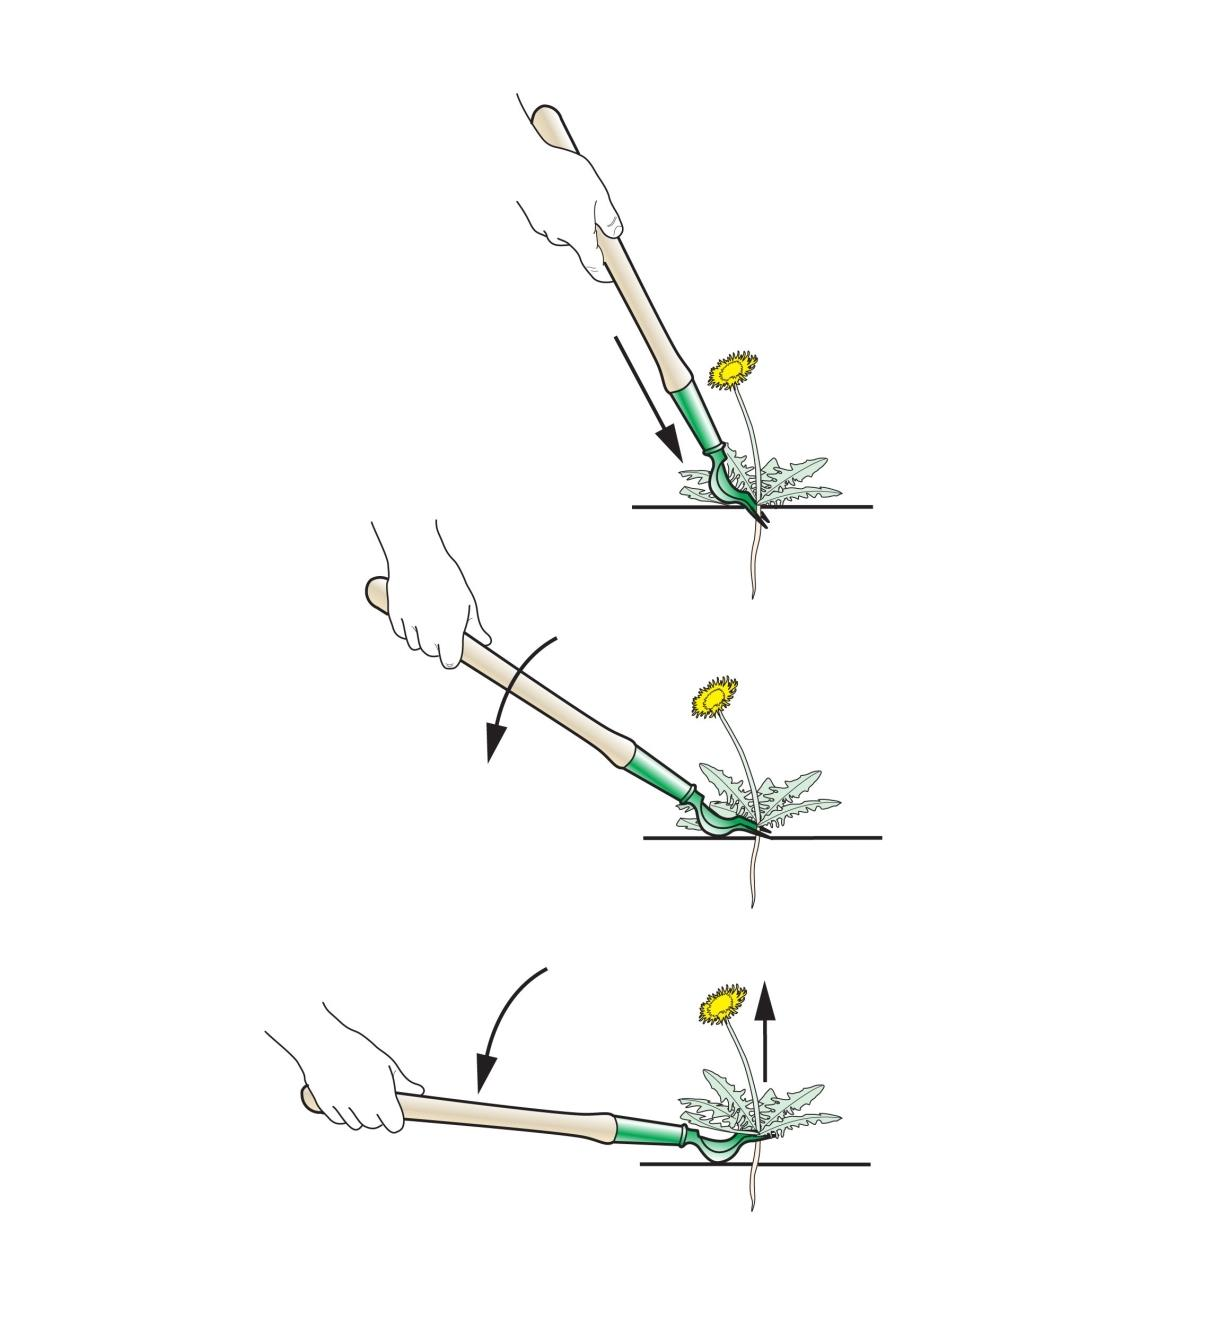 A series of three illustrations shows the action of levering a dandelion out of the ground with the short dandelion digger